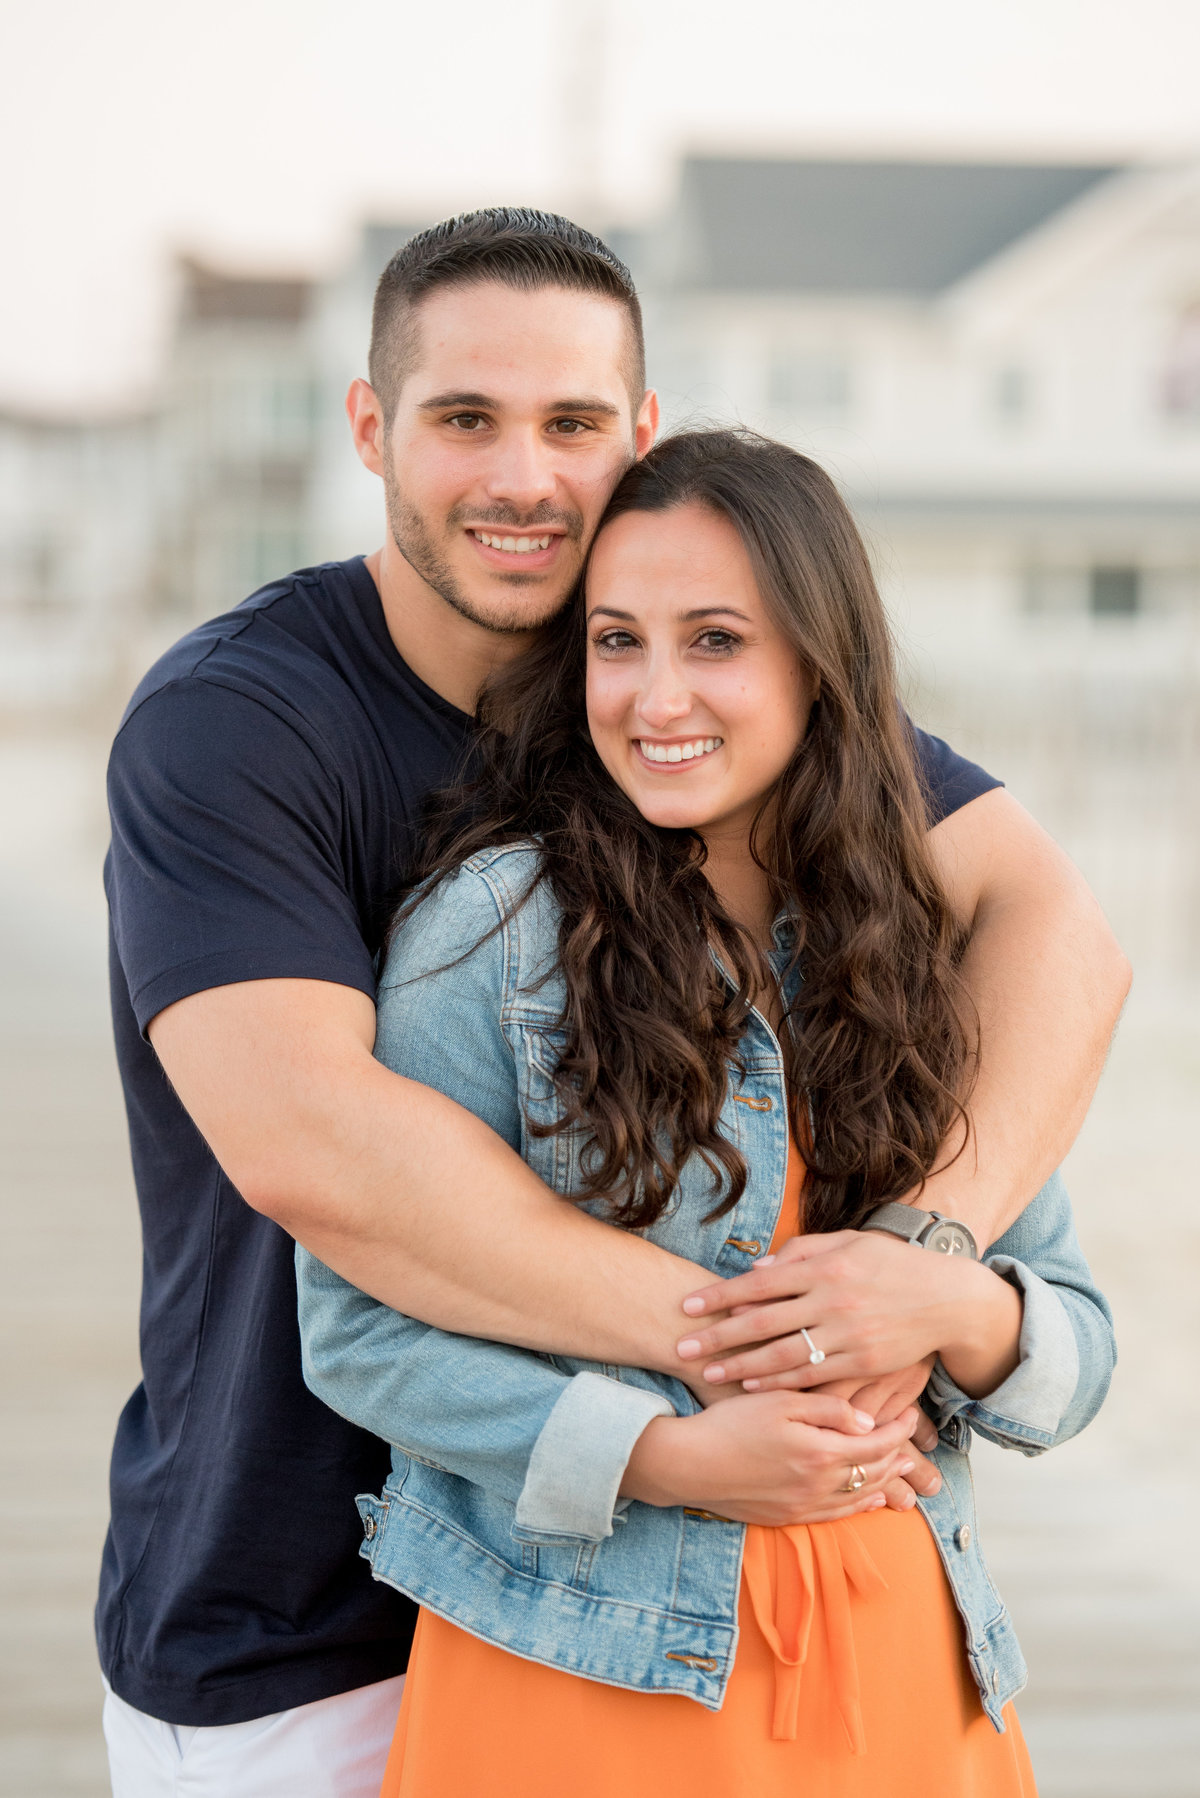 lisa-albino-lavallette-beach-surprise-proposal-imagery-by-marianne-2019-112